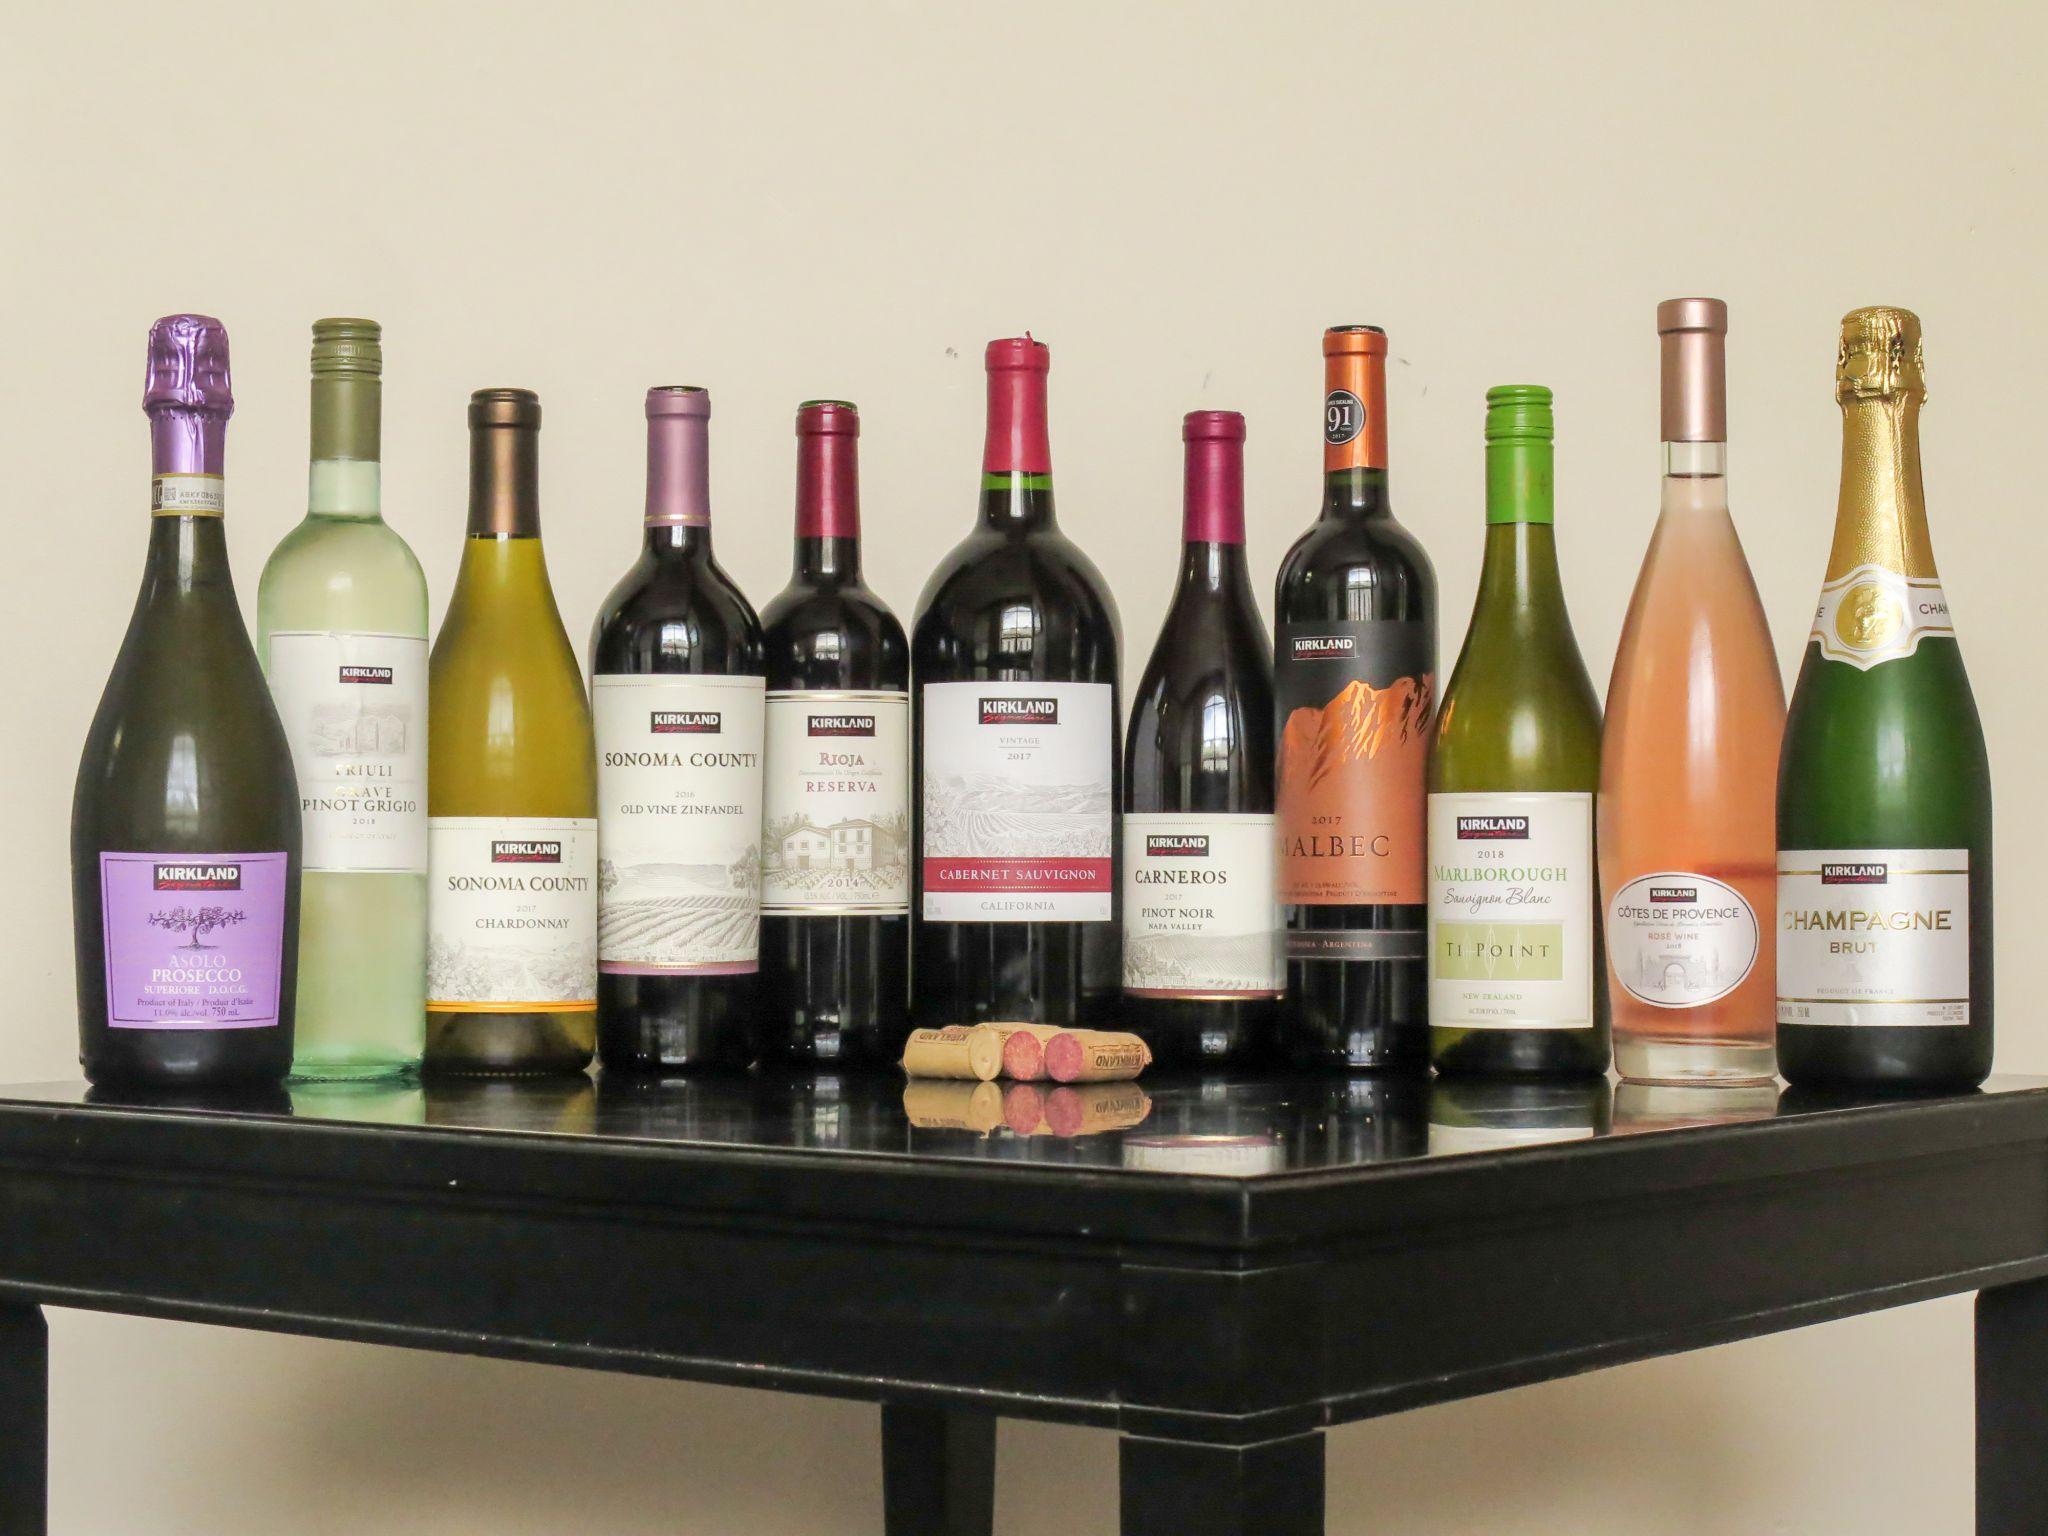 Casual Drinkers Tried 11 Costco Wines Here Are The Best And Worst Of The Kirkland Collection,What 50p Coins Are Worth Money